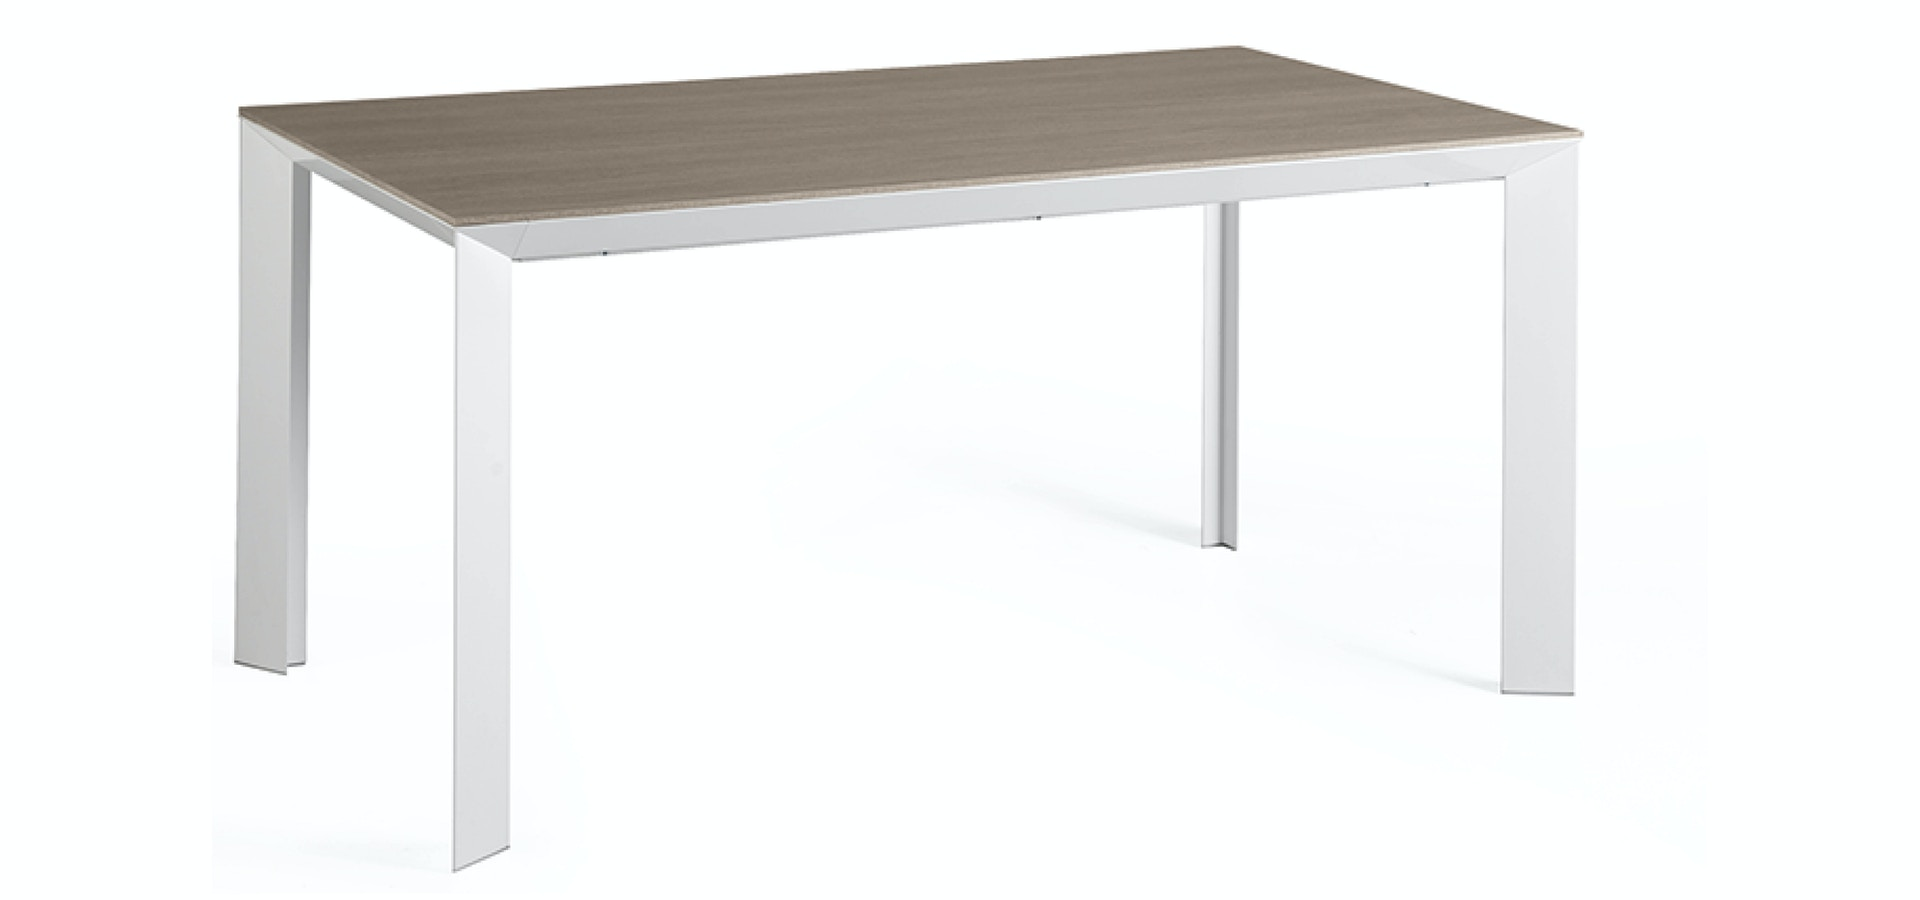 Tables Stosa - Model Cosmo 9279